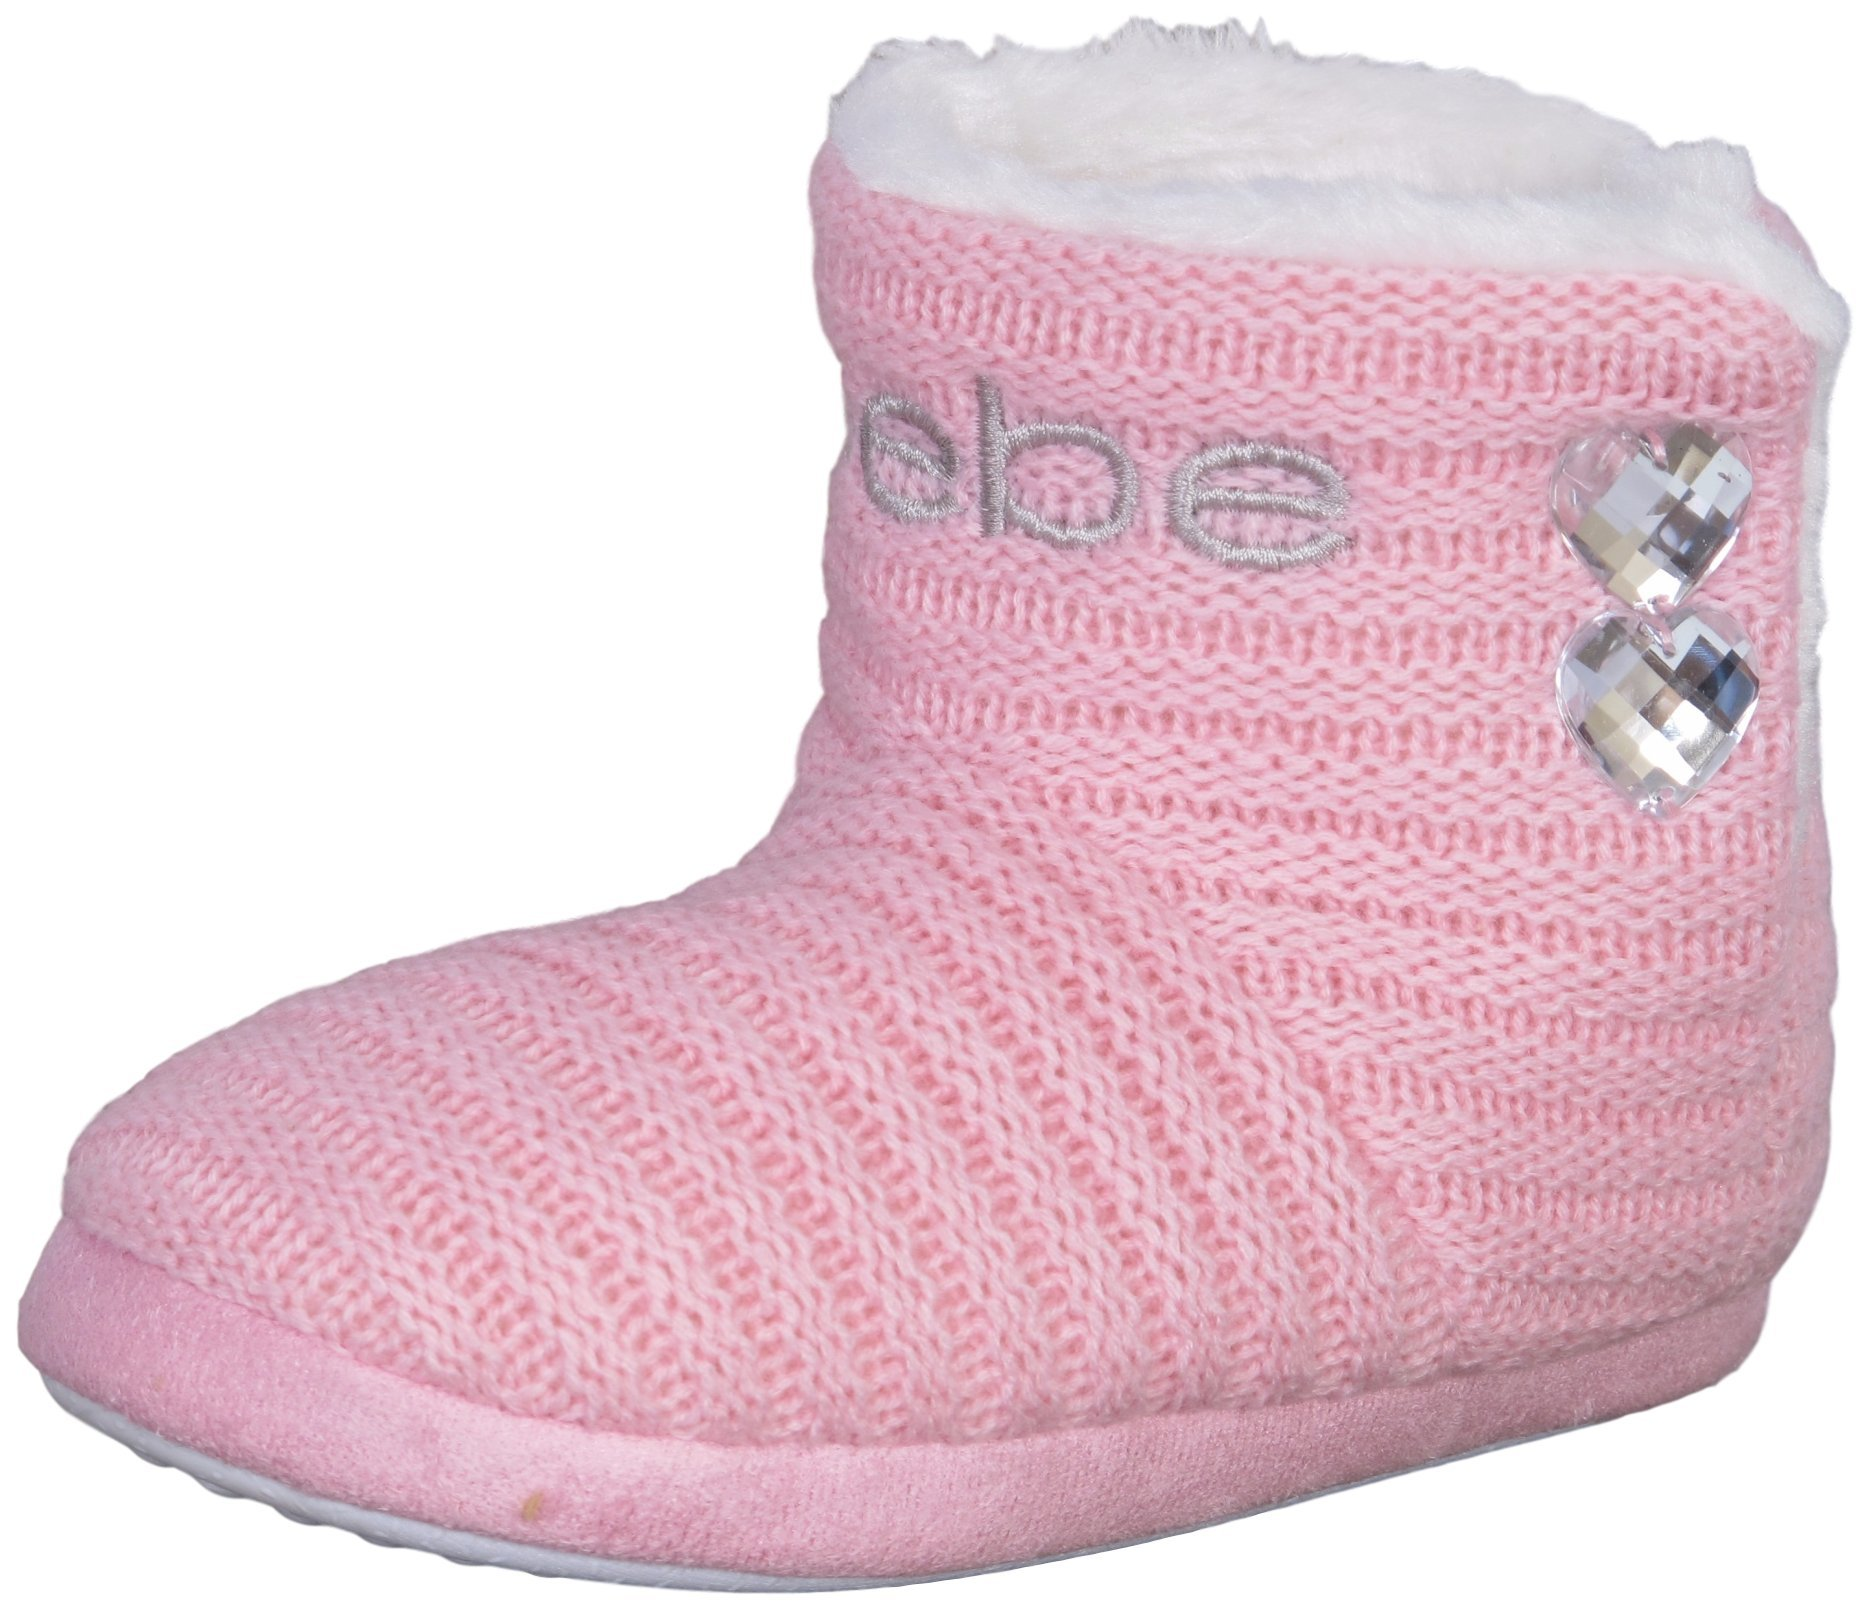 bebe Girl's Knit and Faux Fur Slipper Boots with Rhinestones Detail, Light Pink/White, 2-3 M US Little Kid'